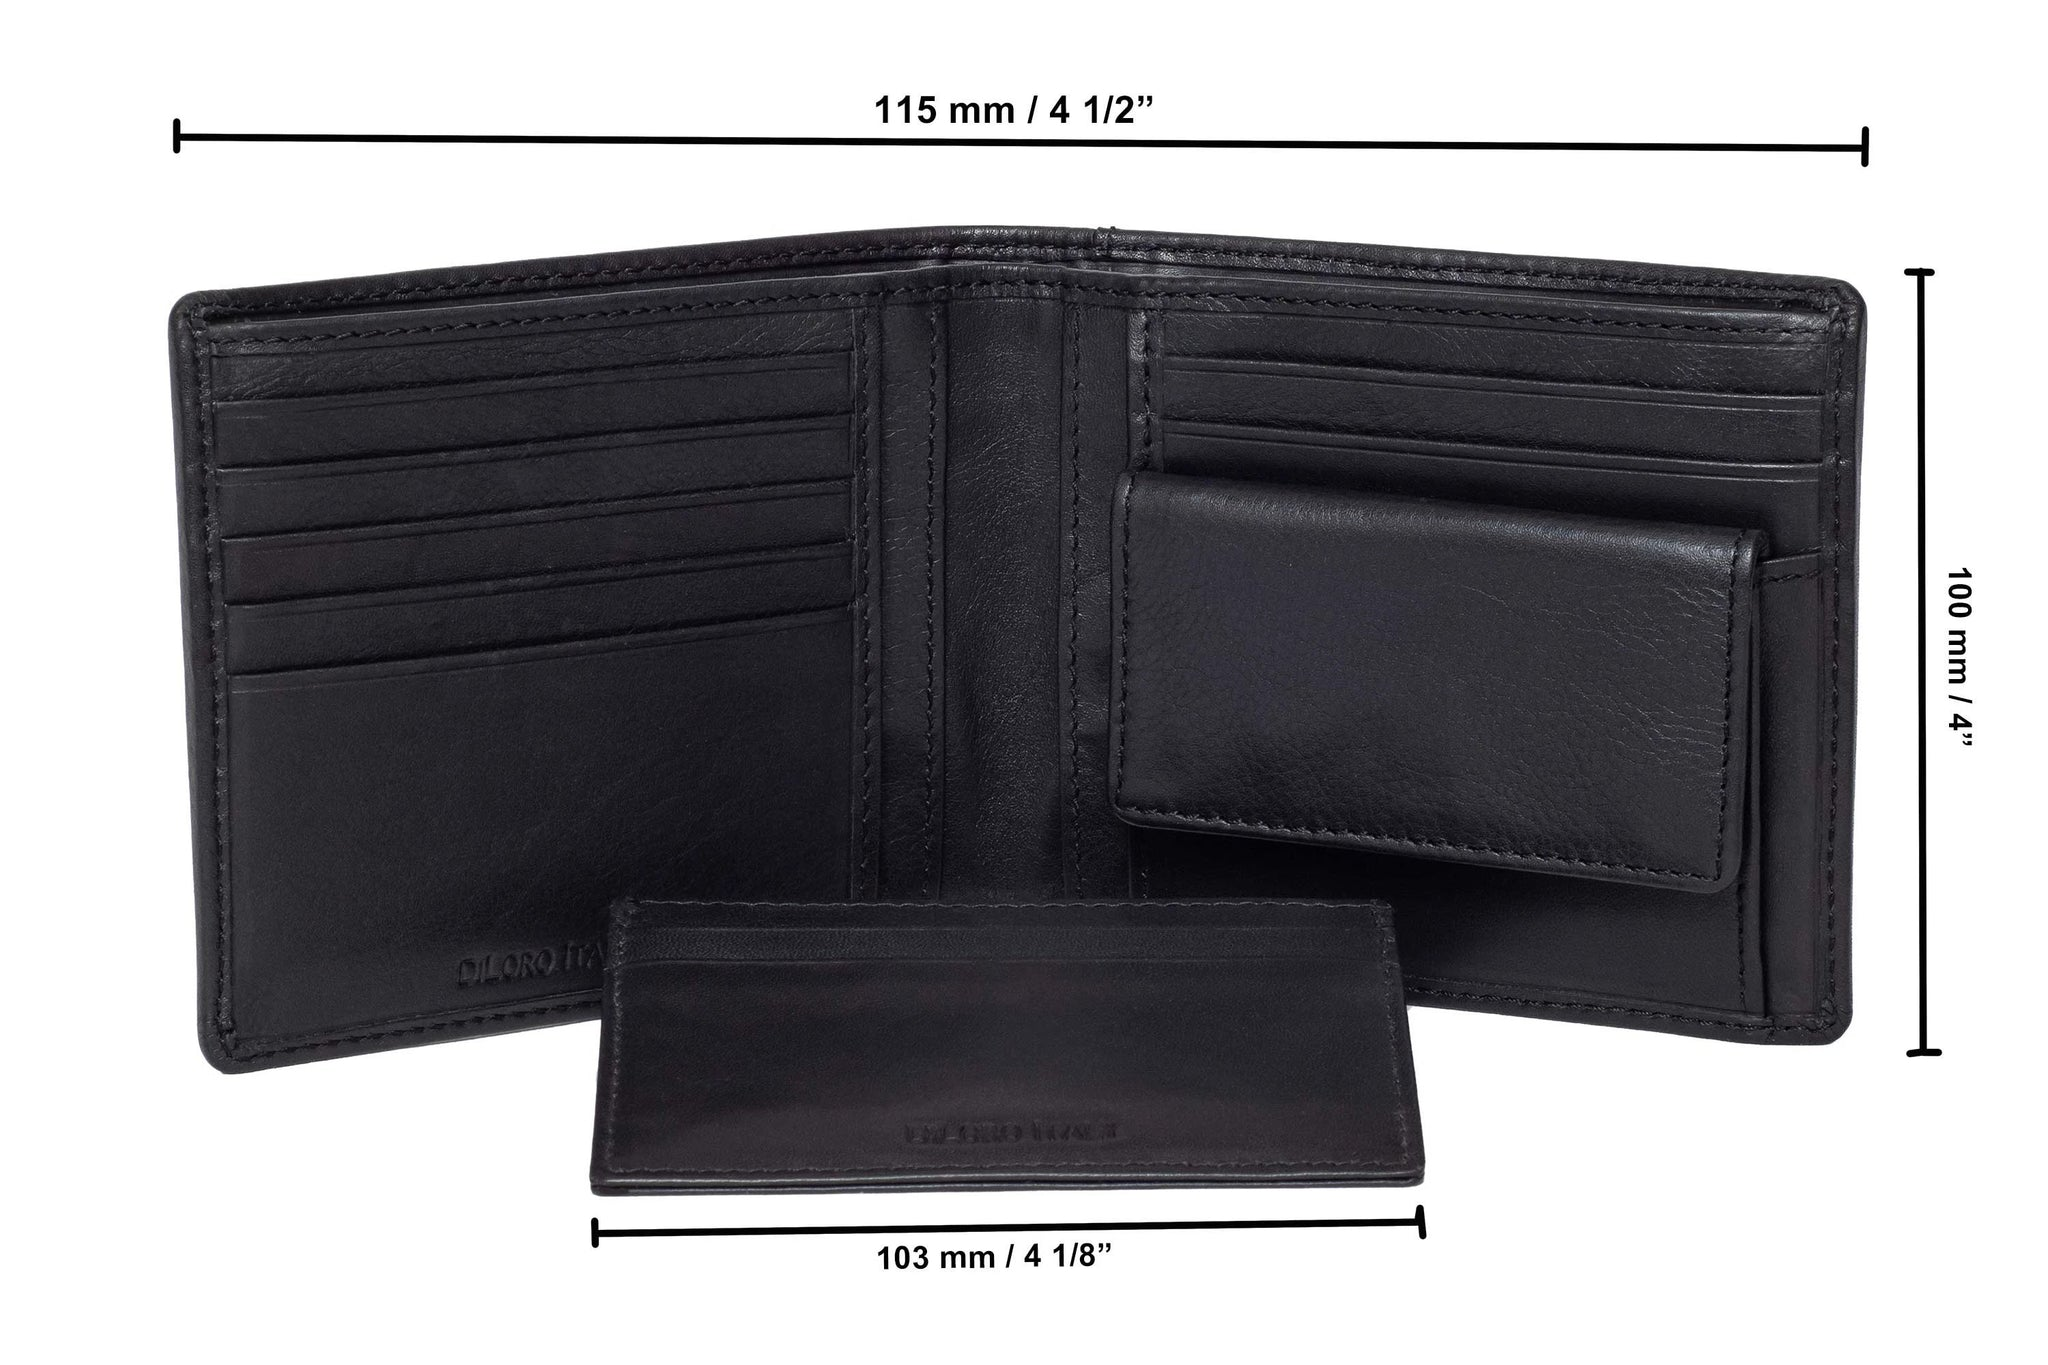 DiLoro Men's Leather Wallets RFID Blocking Removable Card Wallet Black - Inside View with Card Wallet showing dimensions of wallet